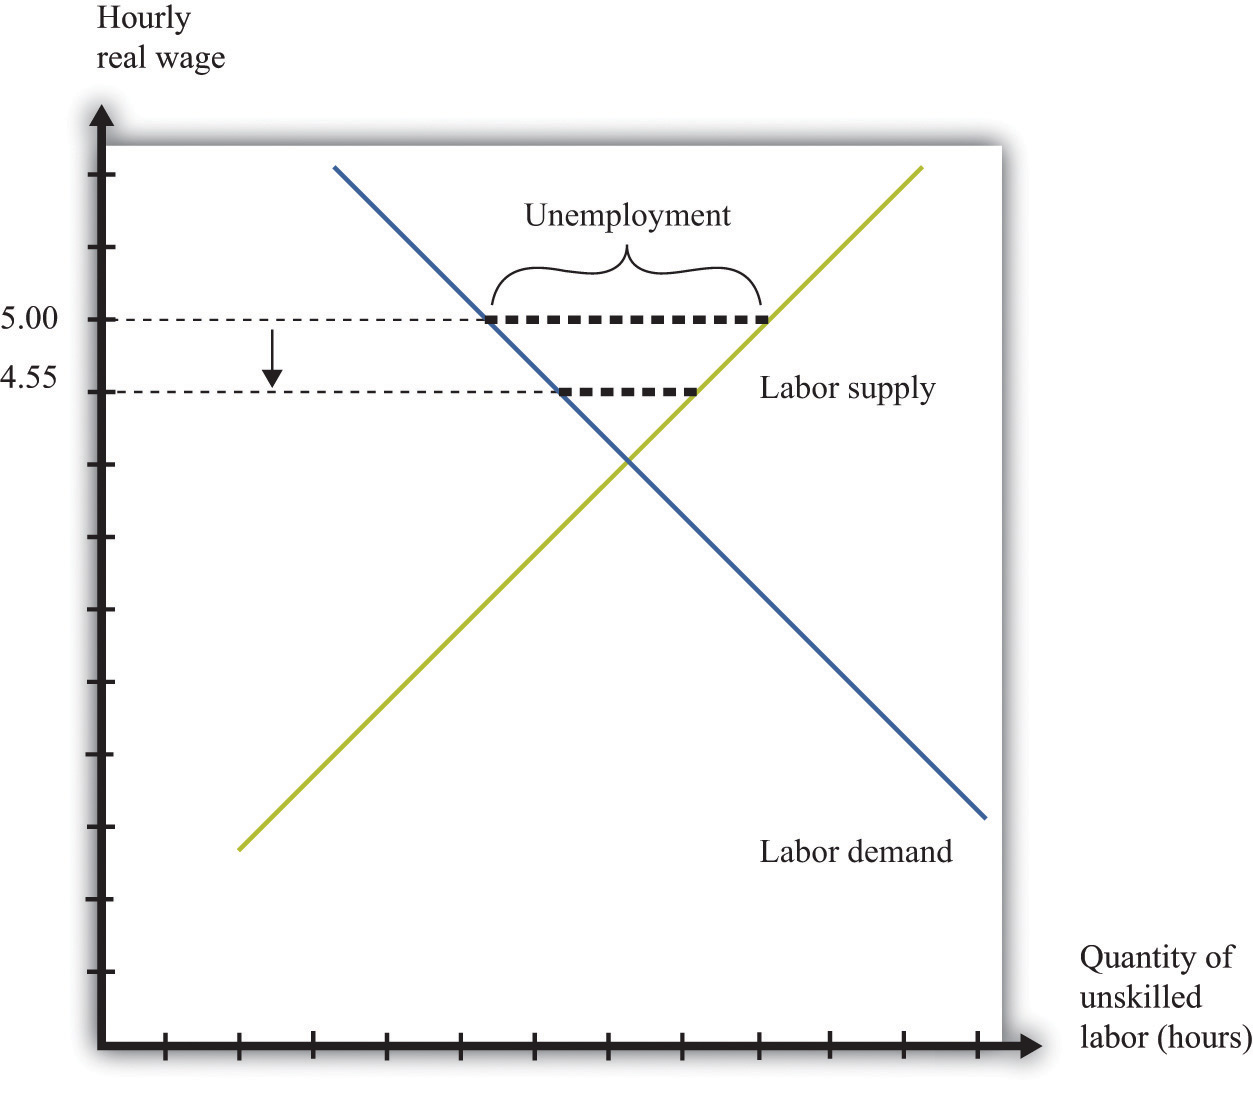 microeconomics theory through applications 1 0 flatworld figure 10 8 effects on unemployment of a reduction in the real minimum wage